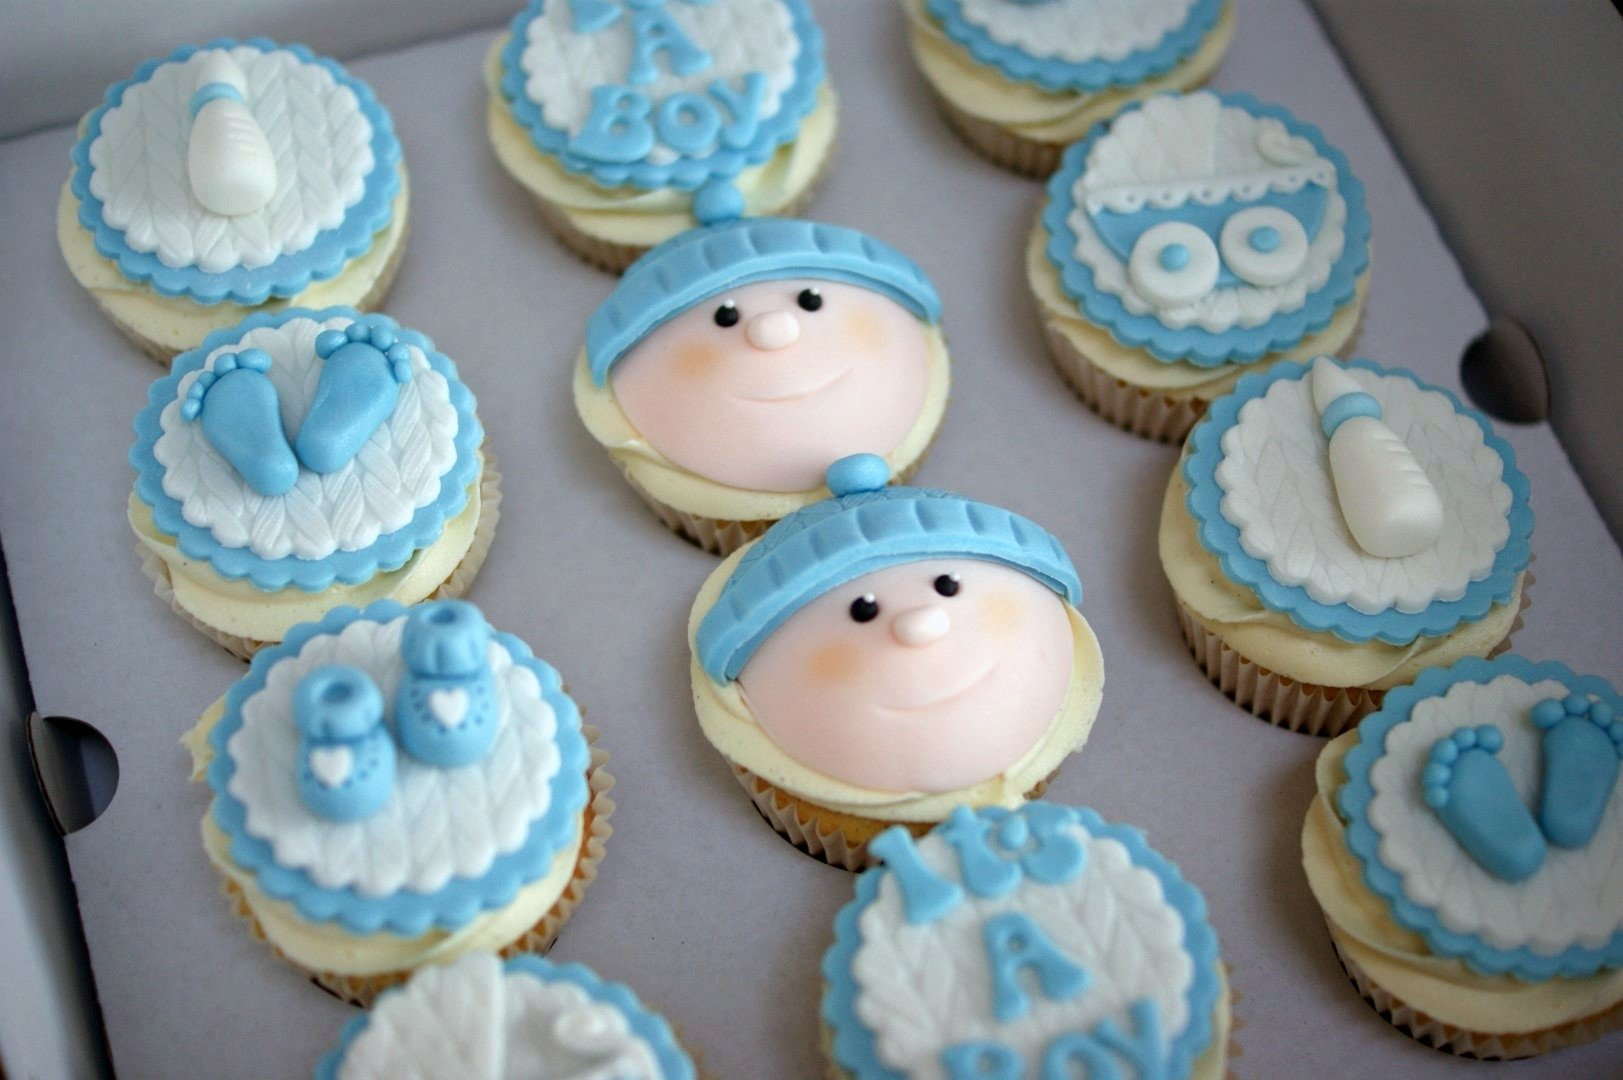 10 Great Baby Shower Cake Ideas For Boy baby shower cupcake decorations boy cake toppers foras pinterest 1 2020